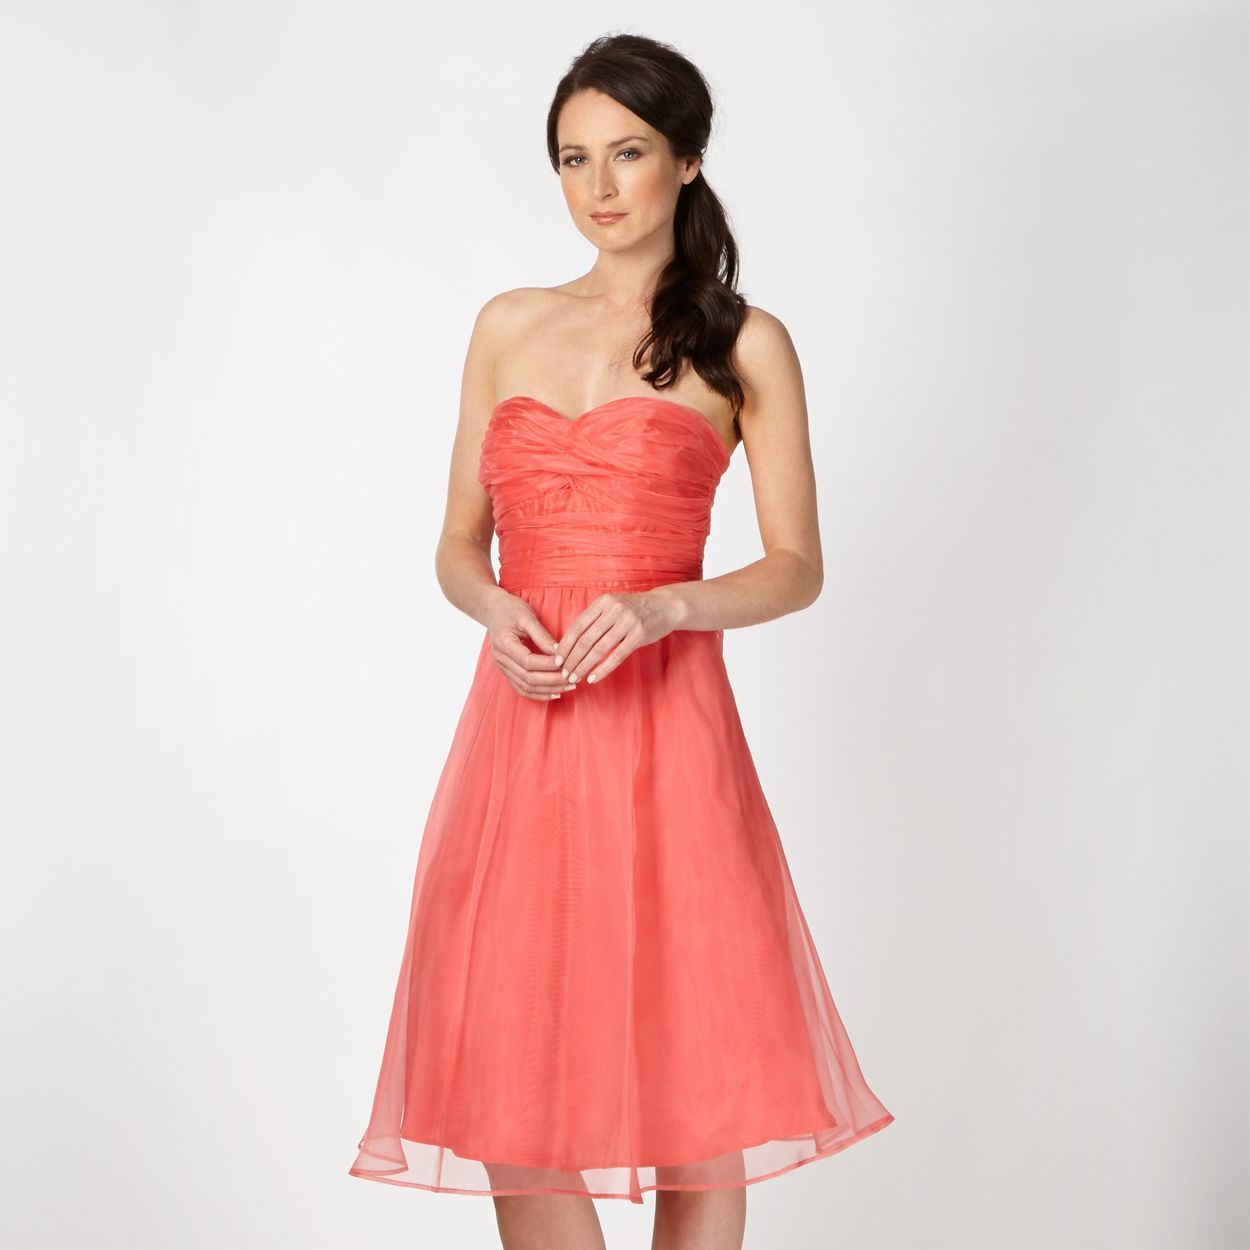 Coral organza prom dress bridesmaids pinterest prom dresses coral bridemaid prom debenhams debut coral dress size 8 ombrellifo Image collections